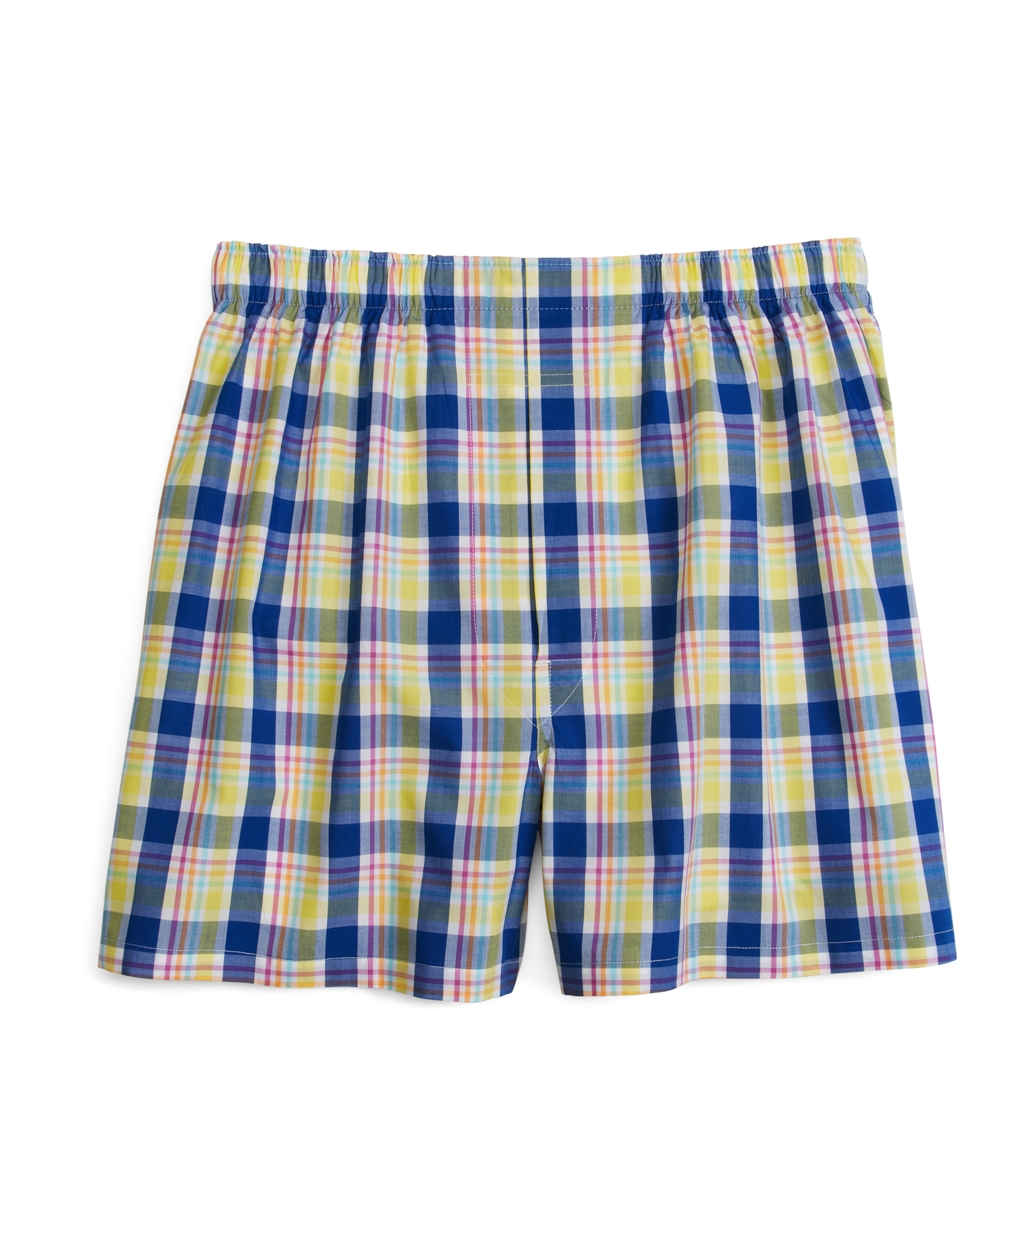 Brooks brothers slim fit yellow plaid boxers in blue for for Blue and yellow plaid dress shirt